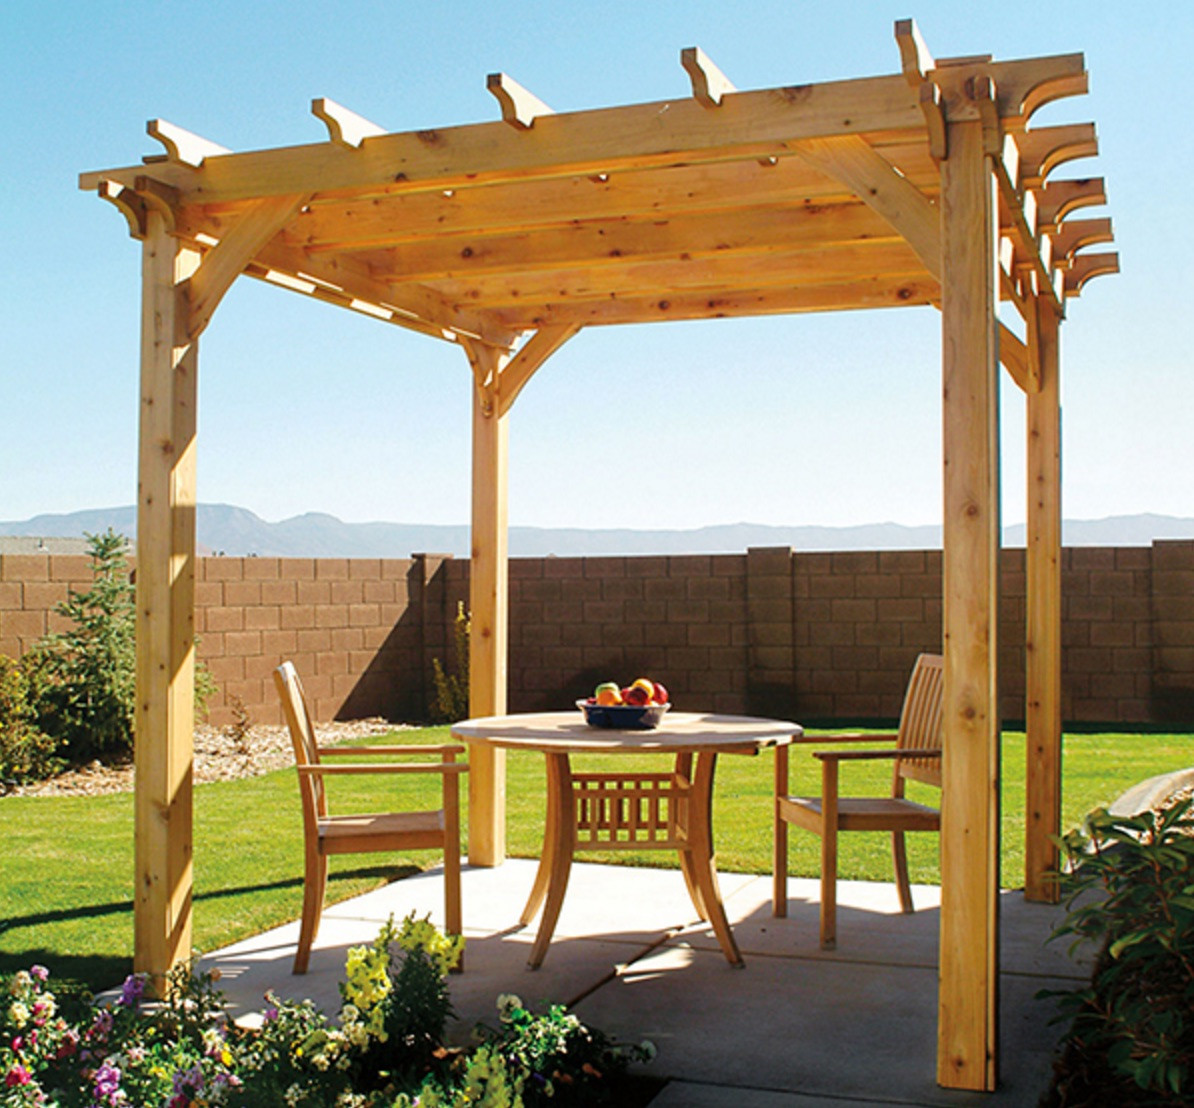 Best ideas about Pergola Plans DIY . Save or Pin DIY Backyard Pergola with Free Plan Now.